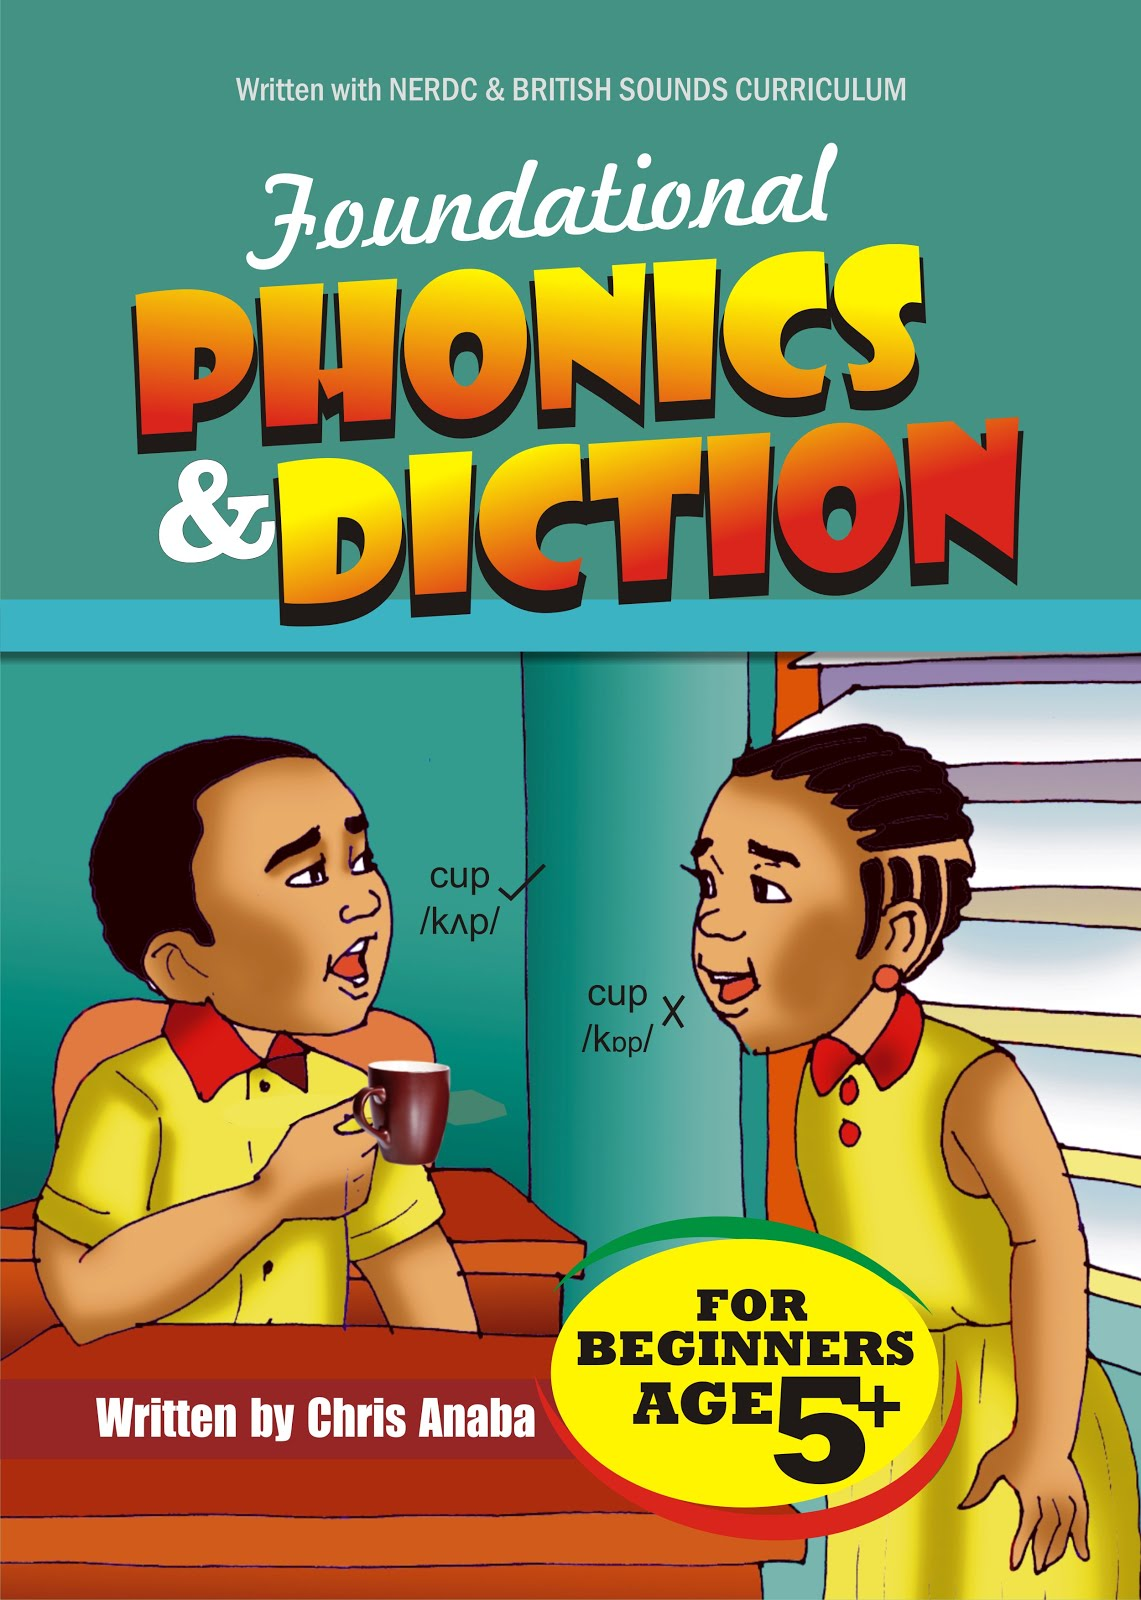 COMING SOON: Foundational Phonics and Diction by Chris Anaba